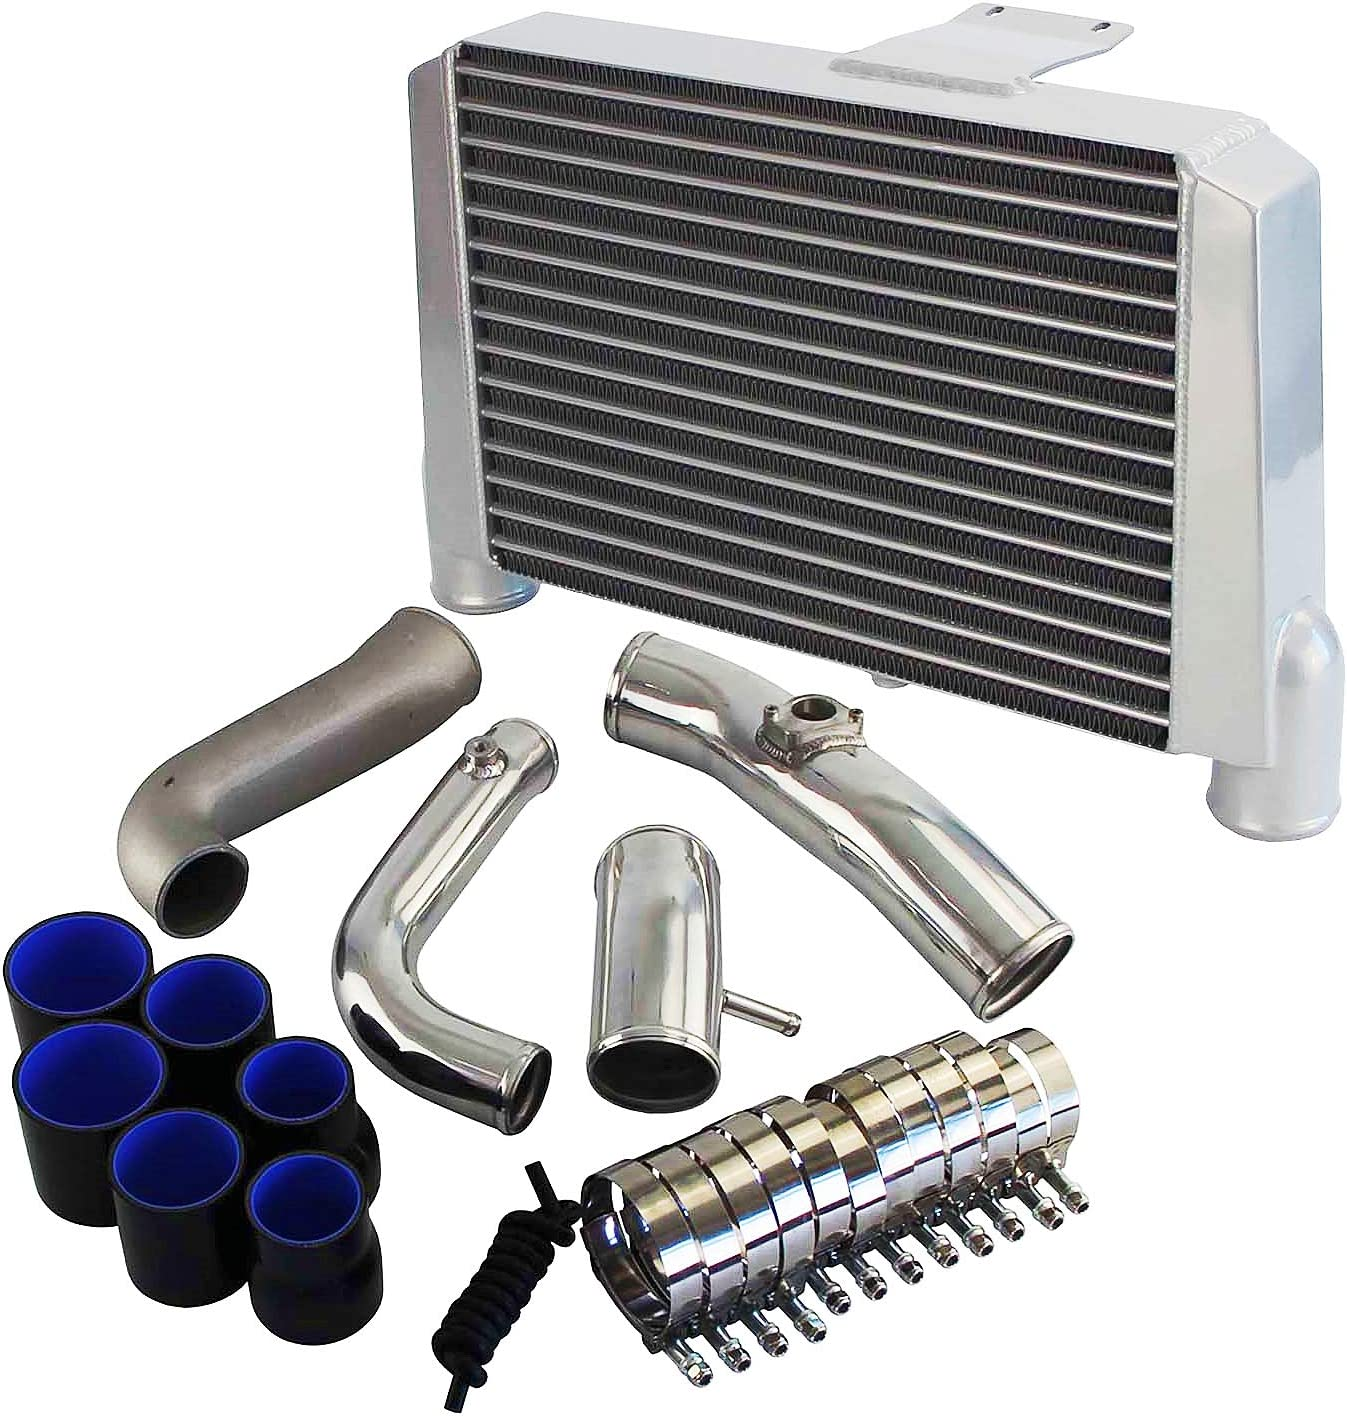 Fmic Intercooler kit piping Special sale item 100% quality warranty pipe fits for 86 Brz Fr-s Toyota